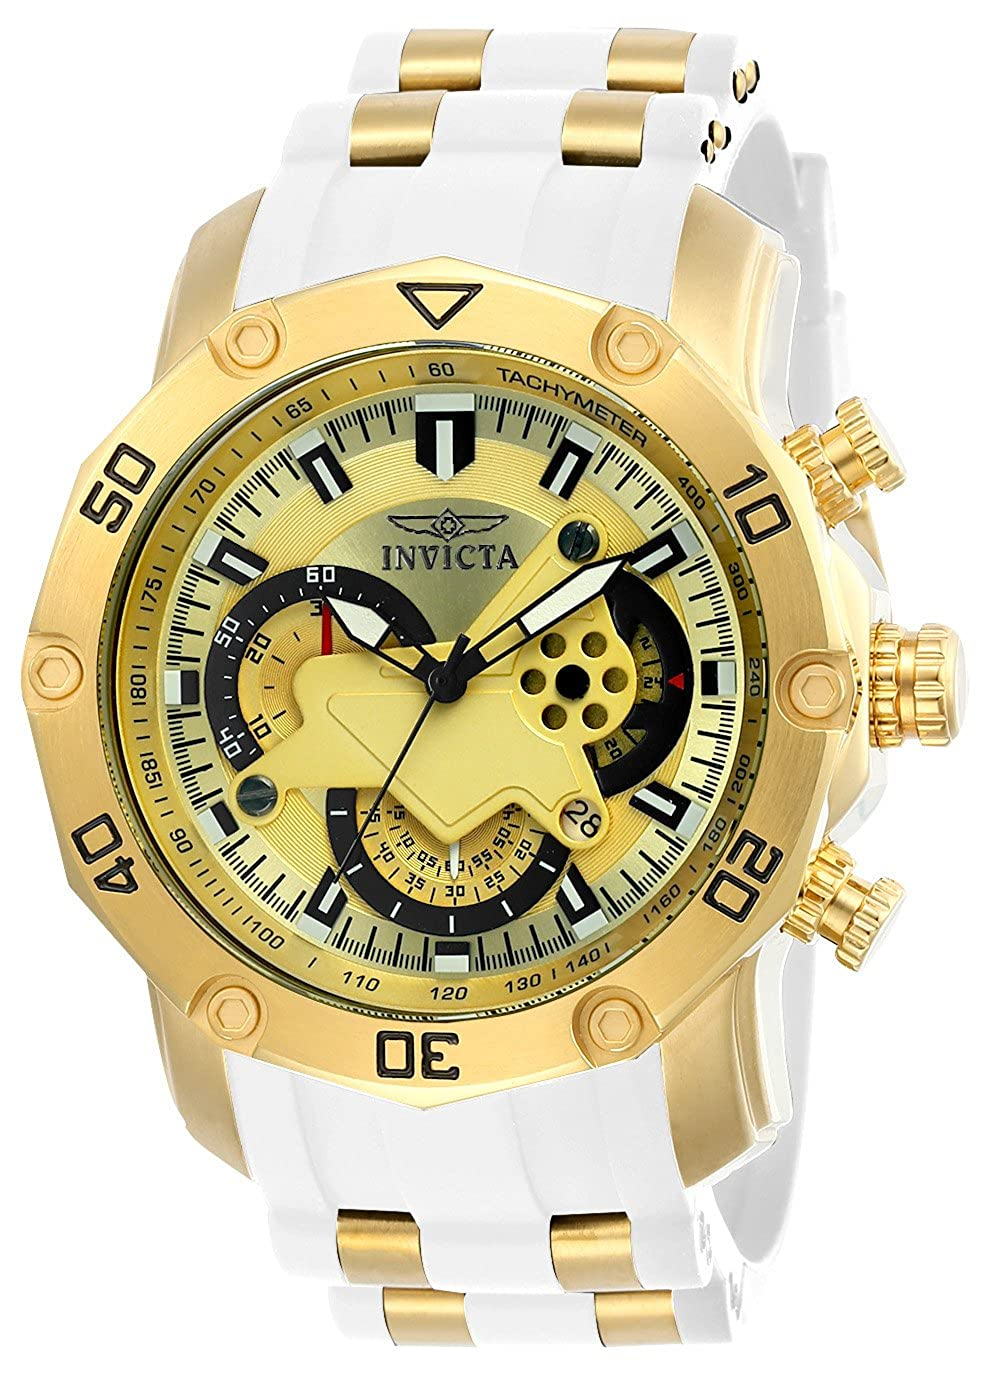 Invicta Men s Pro Diver Stainless Steel Quartz Watch with Silicone Strap, White, 26